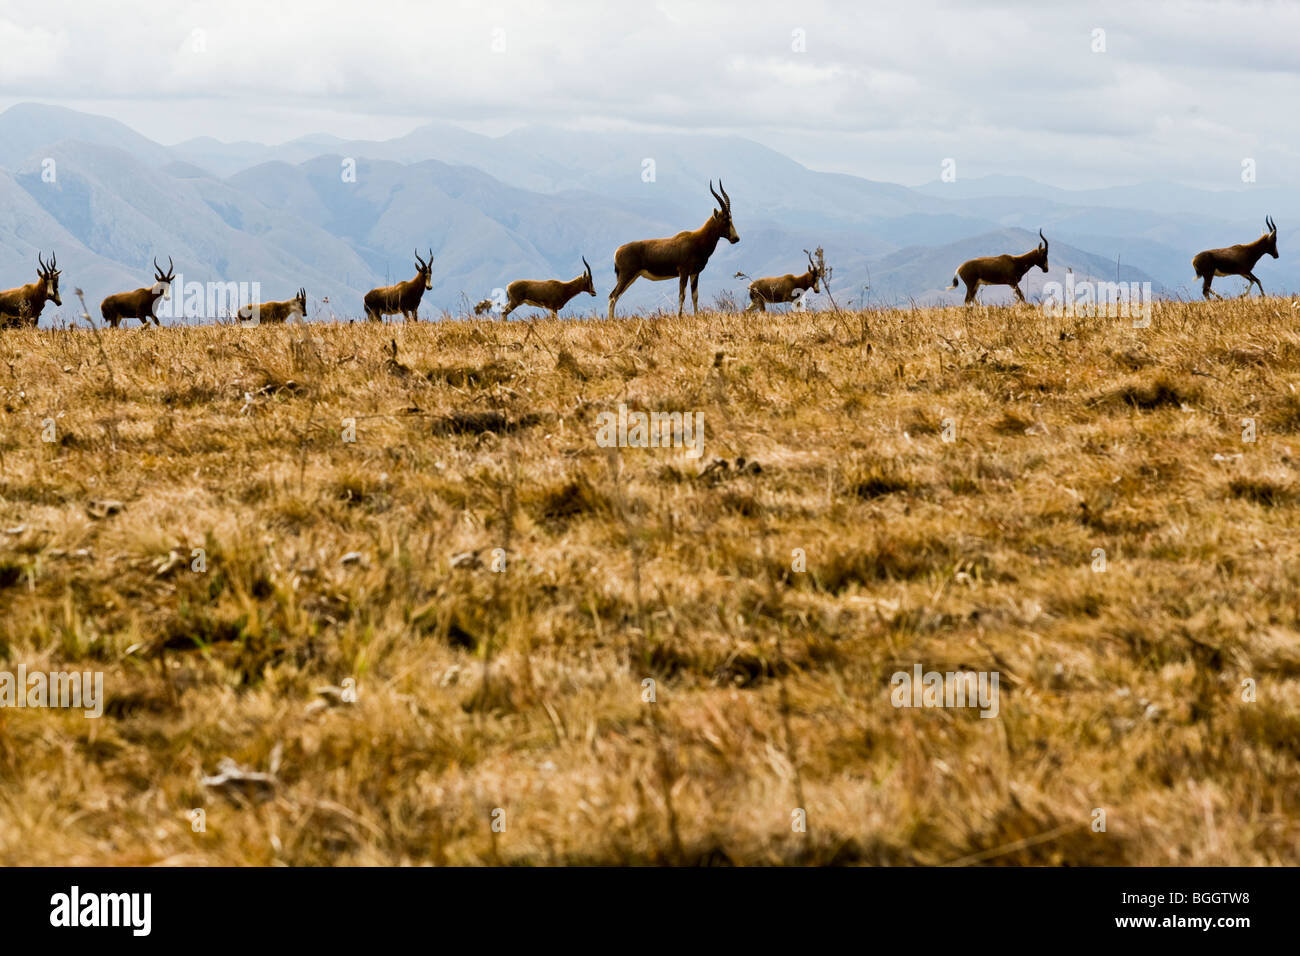 Blesbok herd in the mountains of Swaziland - Stock Image